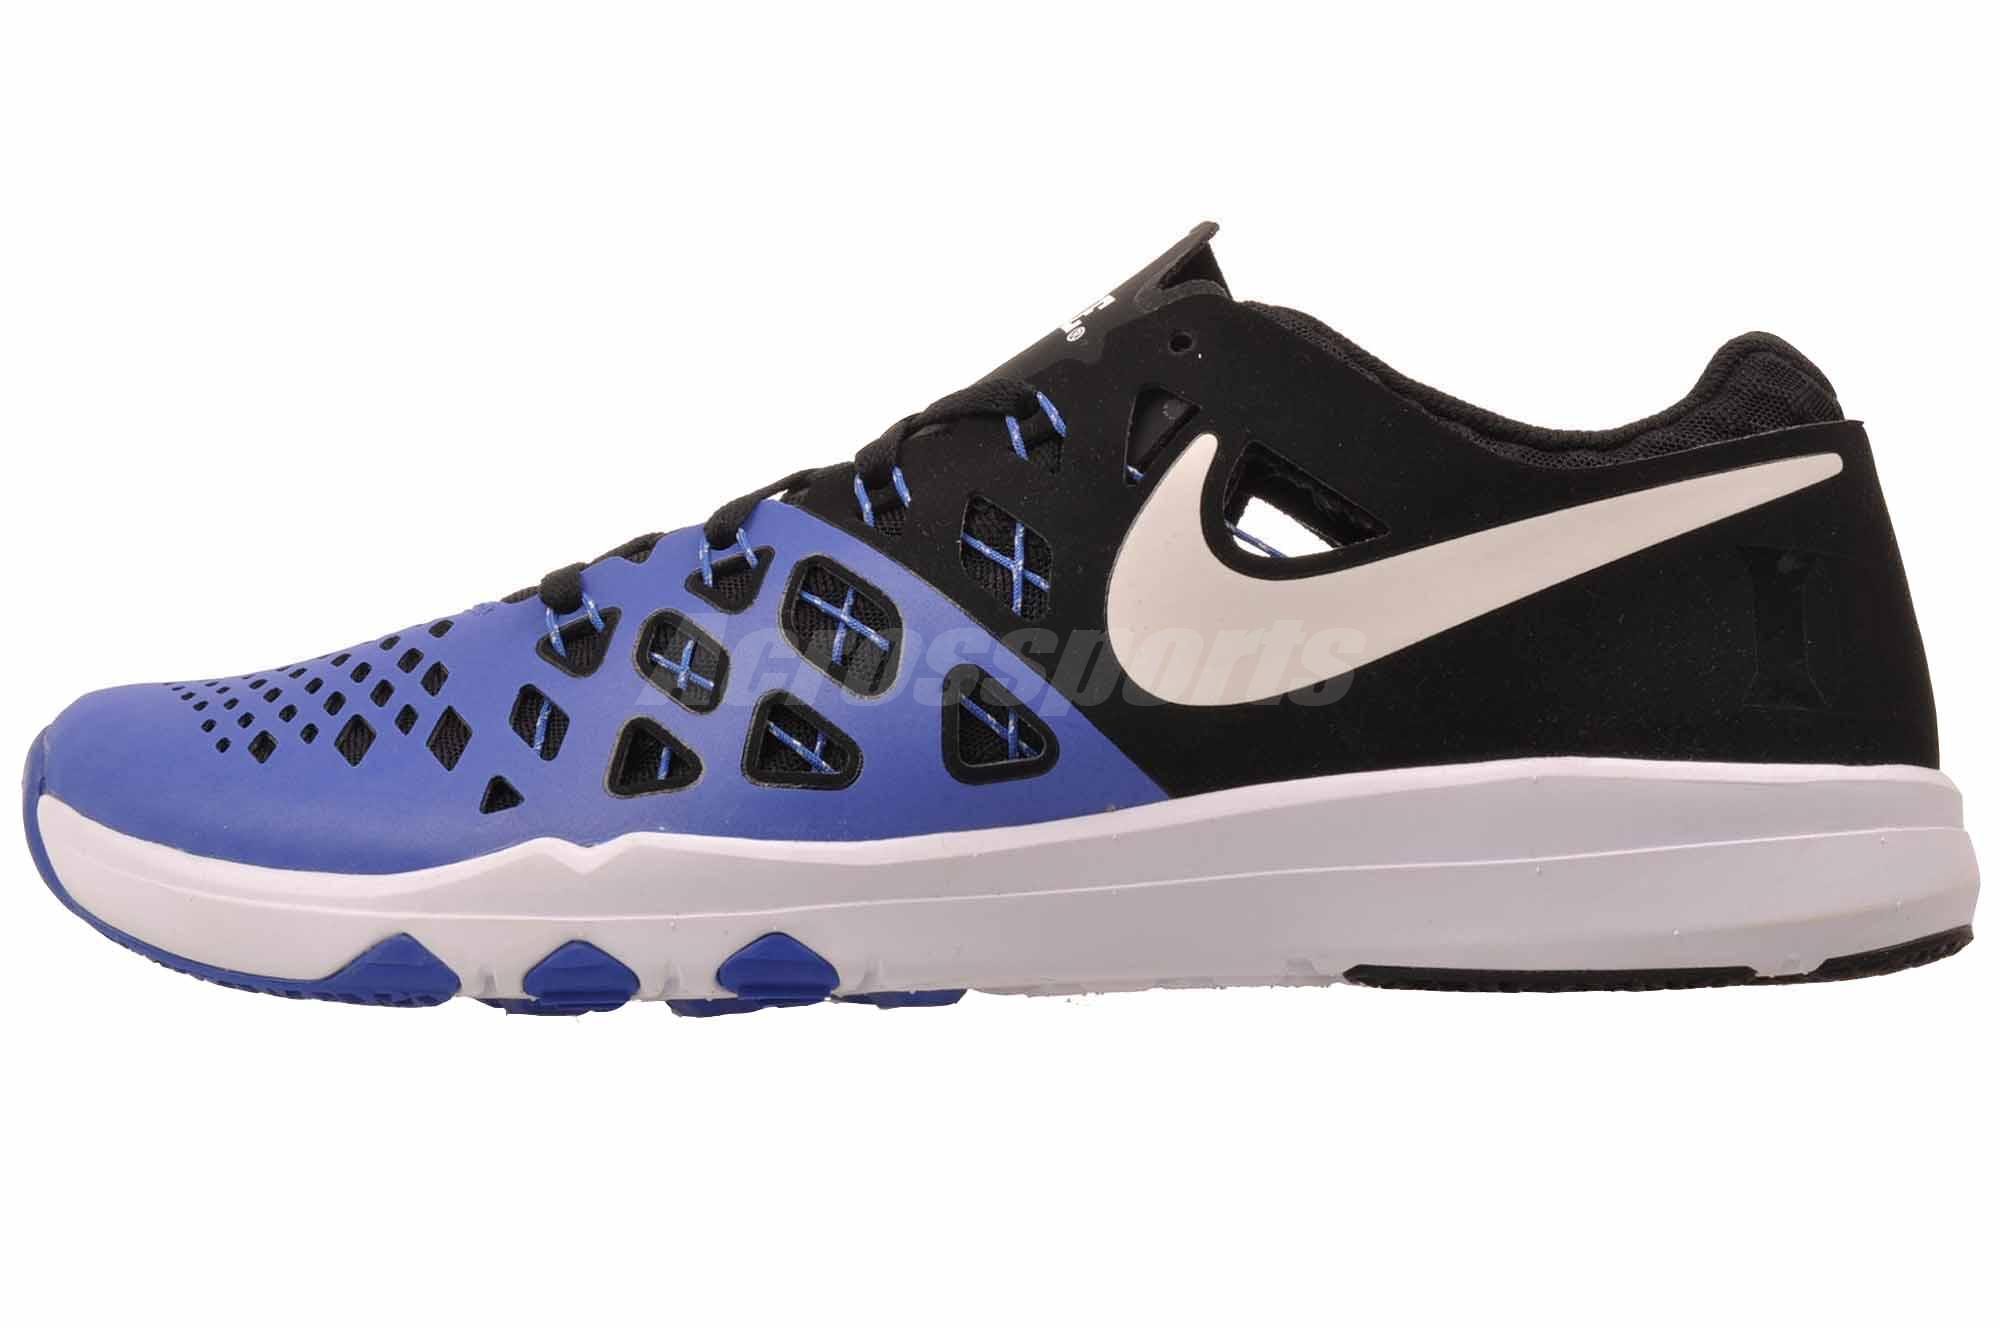 huge selection of 9f5b2 f0b3b Details about Nike Train Speed 4 AMP Cross Training Mens Shoes Blue Devils  Black 844102-410